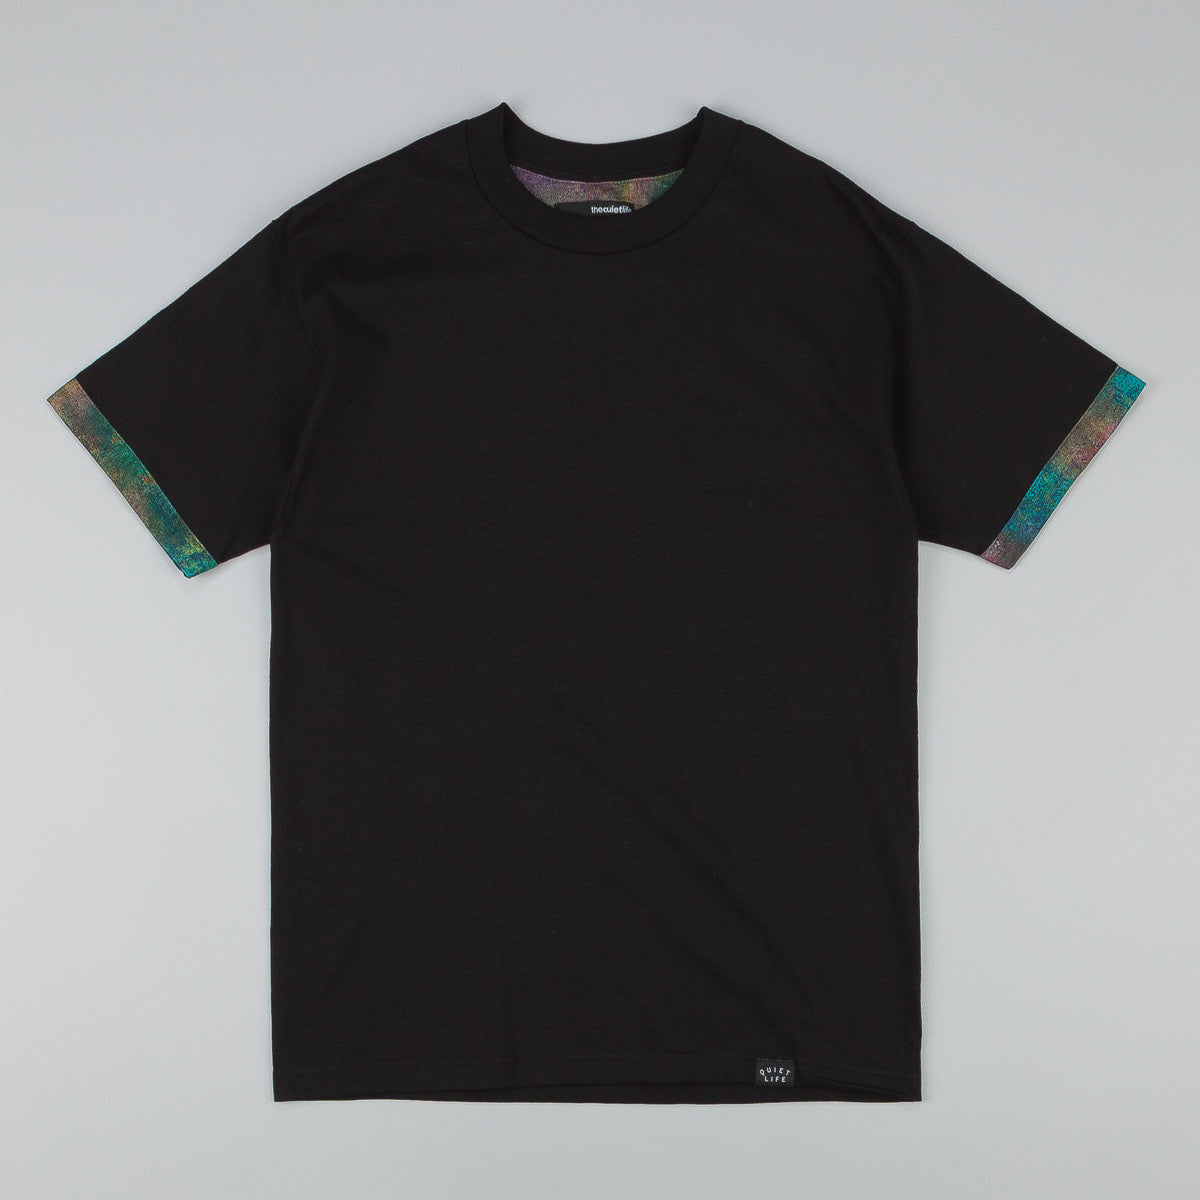 The Quiet Life Tamsyn Cuff T-Shirt - Black